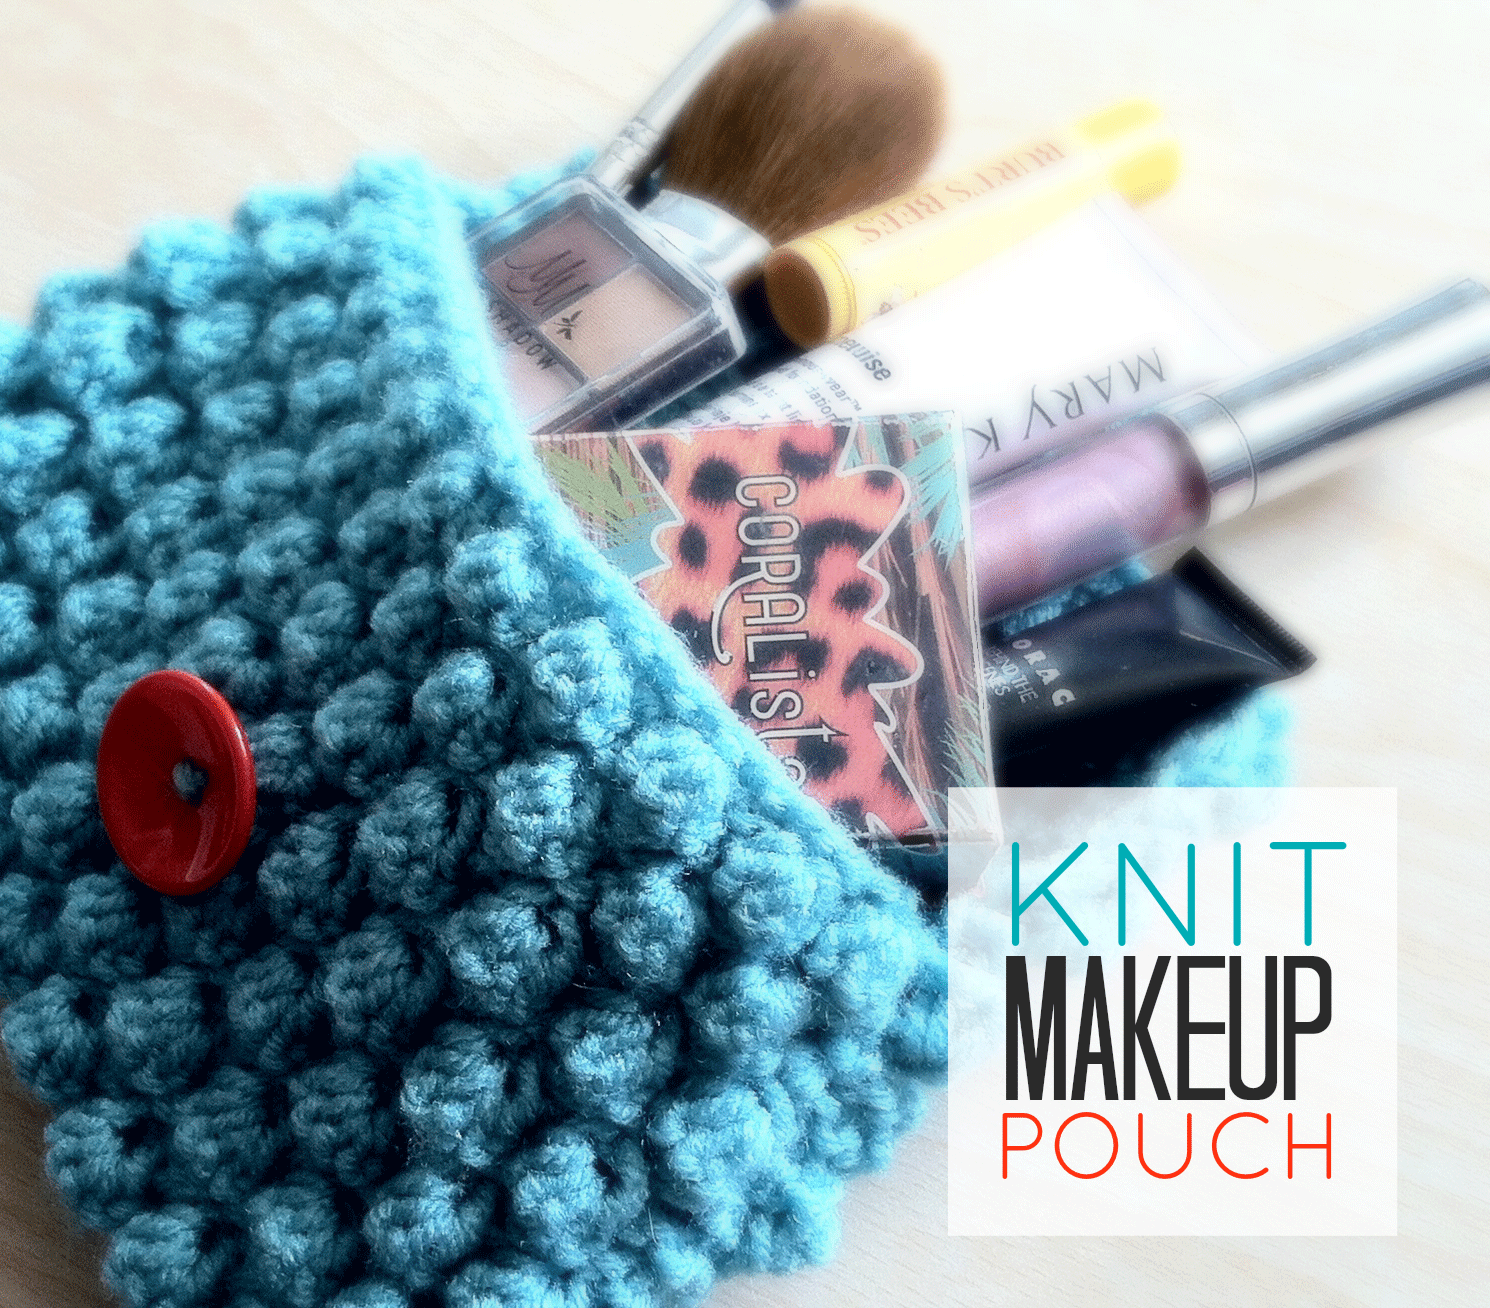 Knit Makeup Pouch